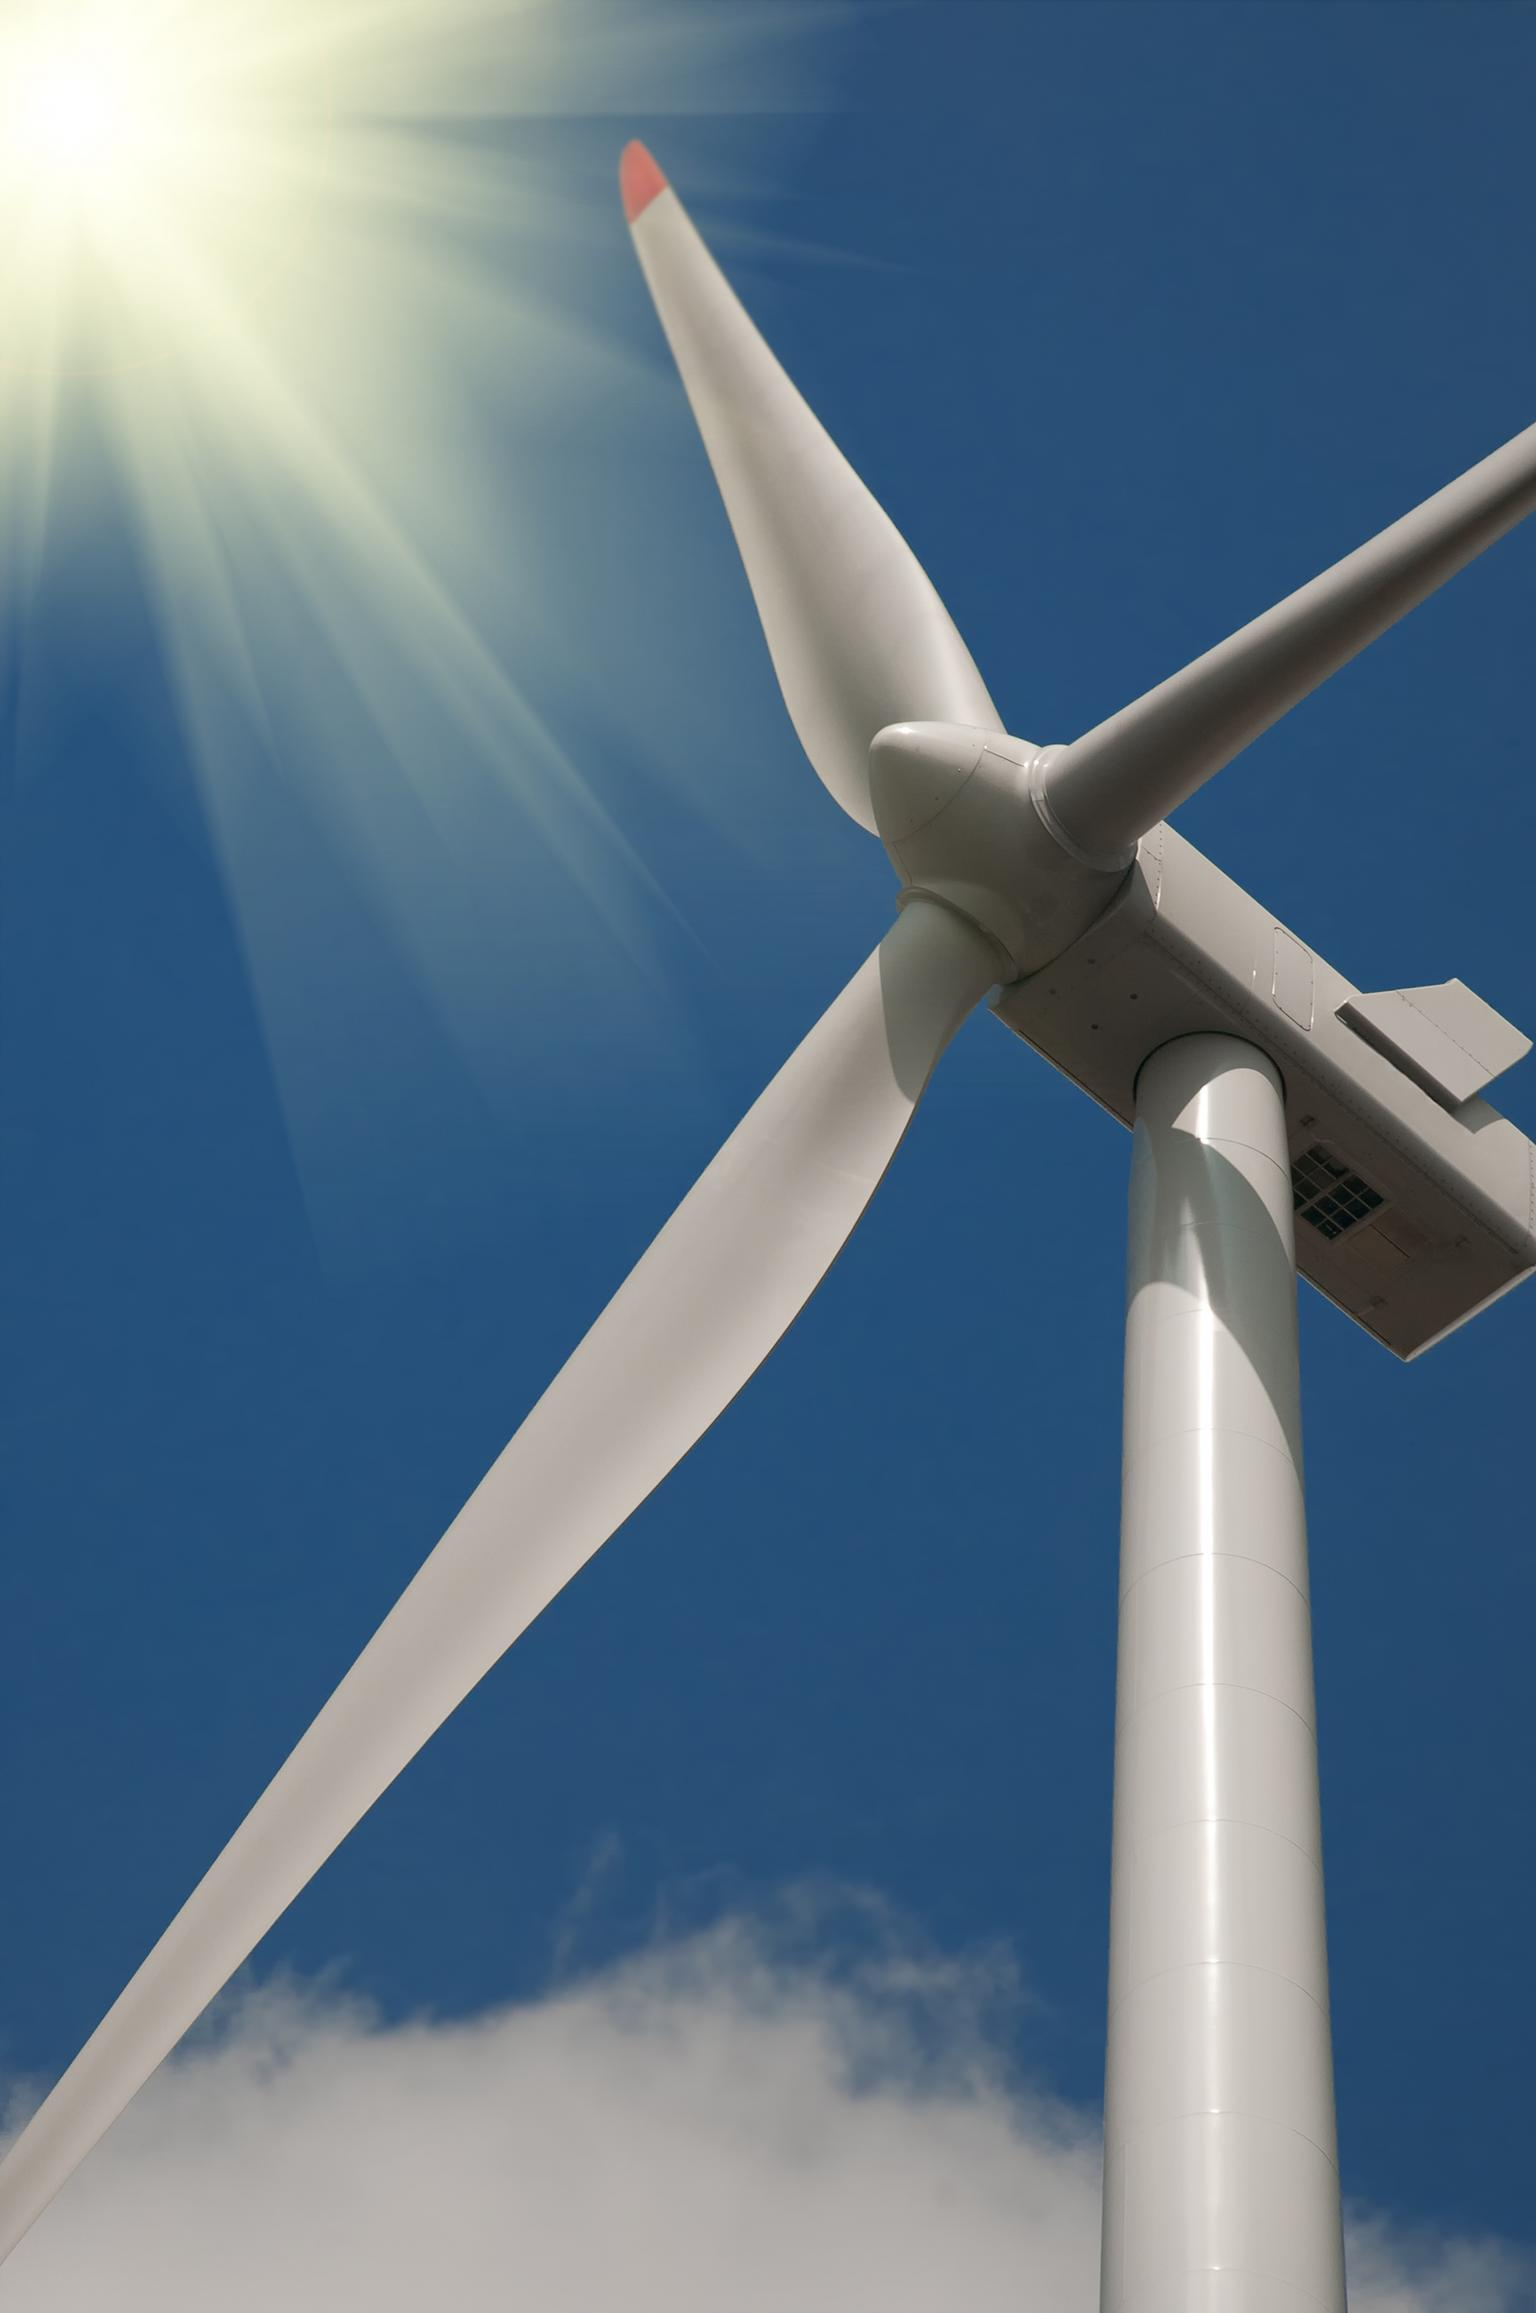 Specialist maitenance providers can help to improve the realiability and lifespan of wind turbines